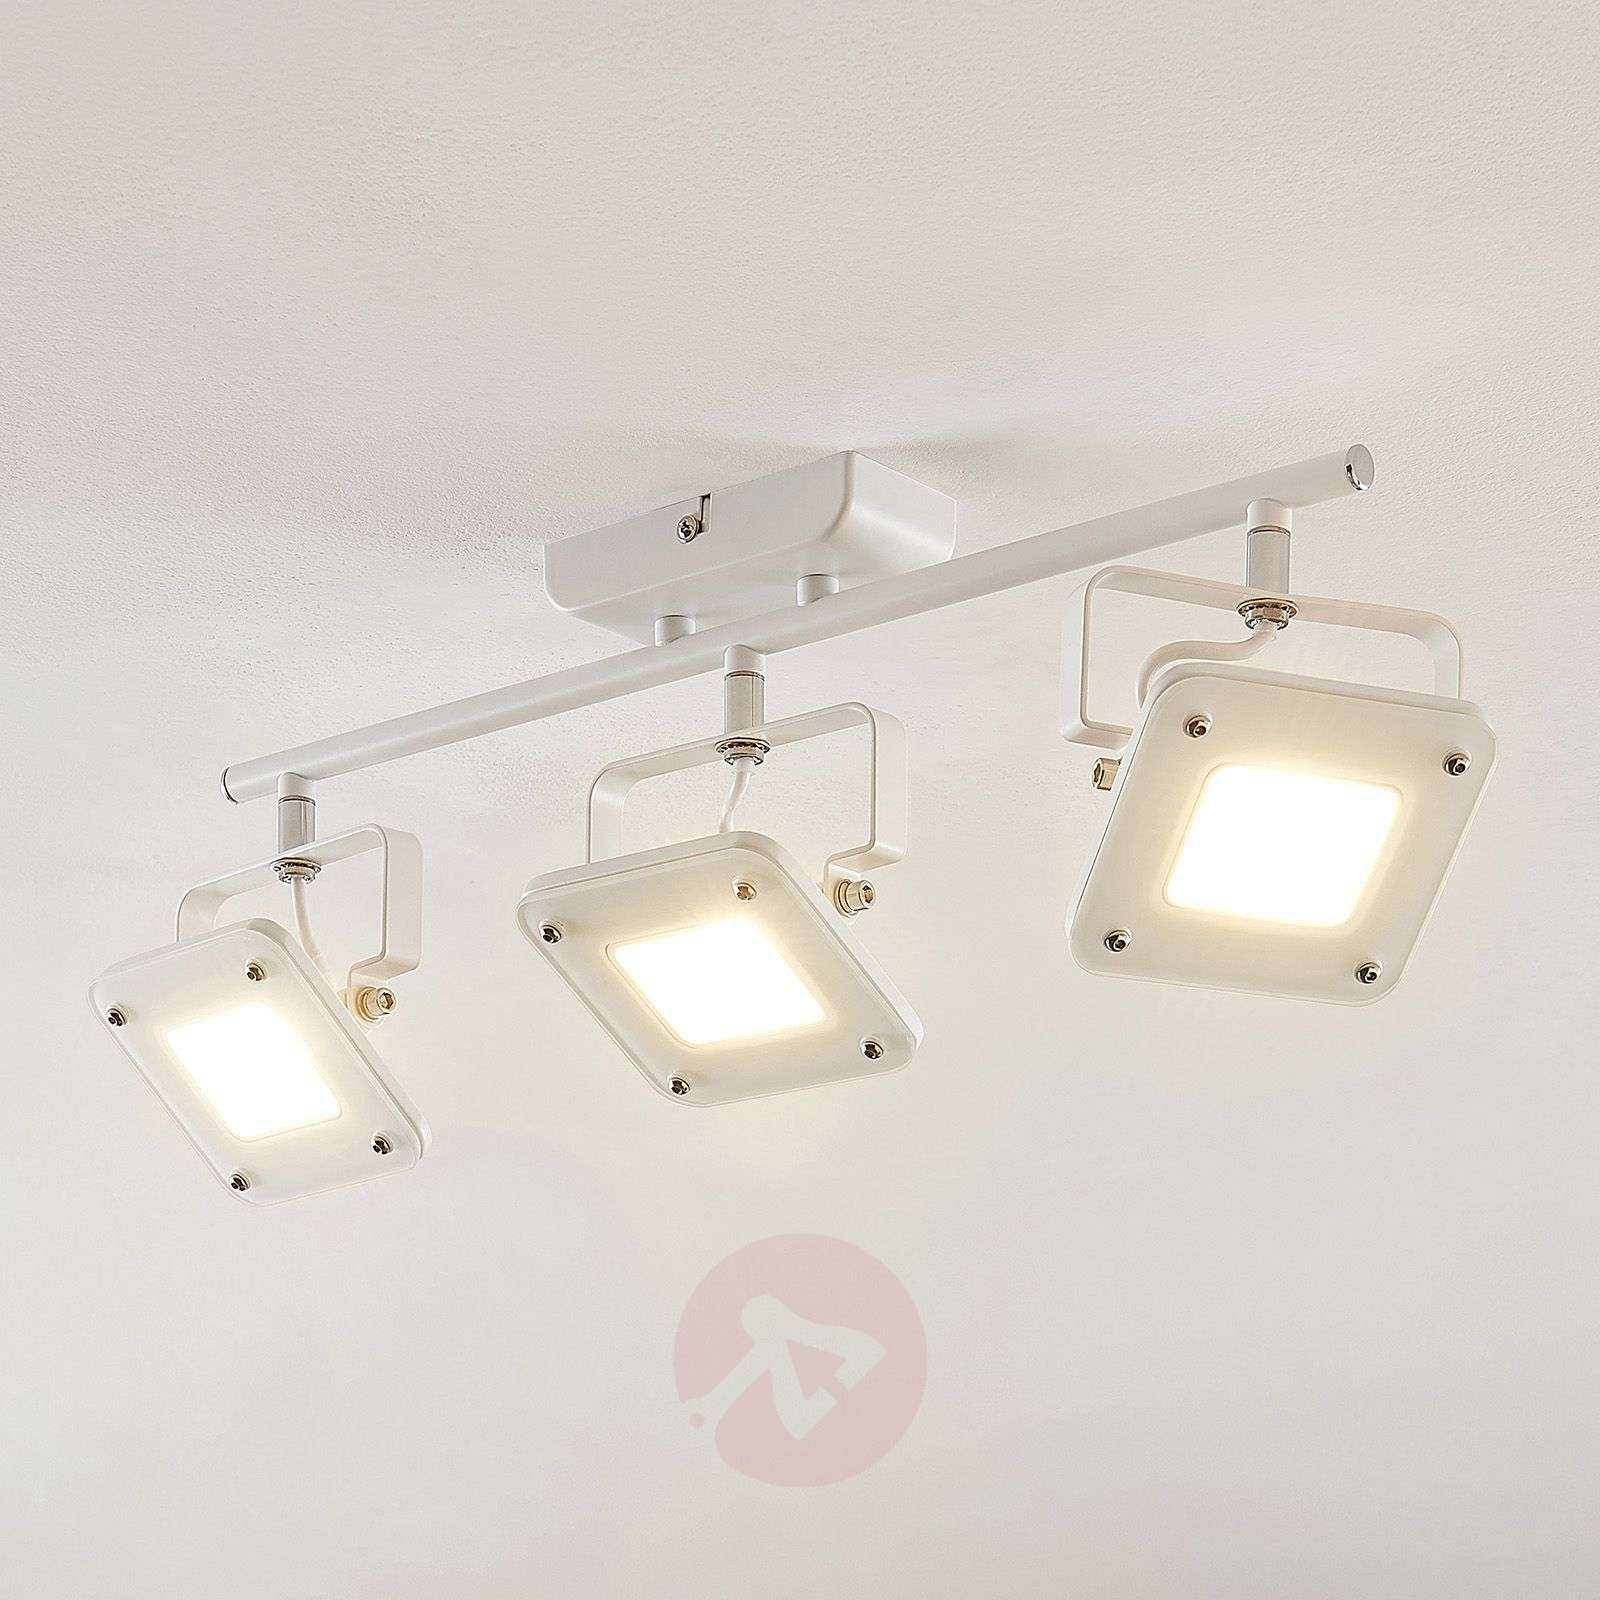 Spot pour plafond LED Juliana, dimmable, 3 lampes-9950718-03